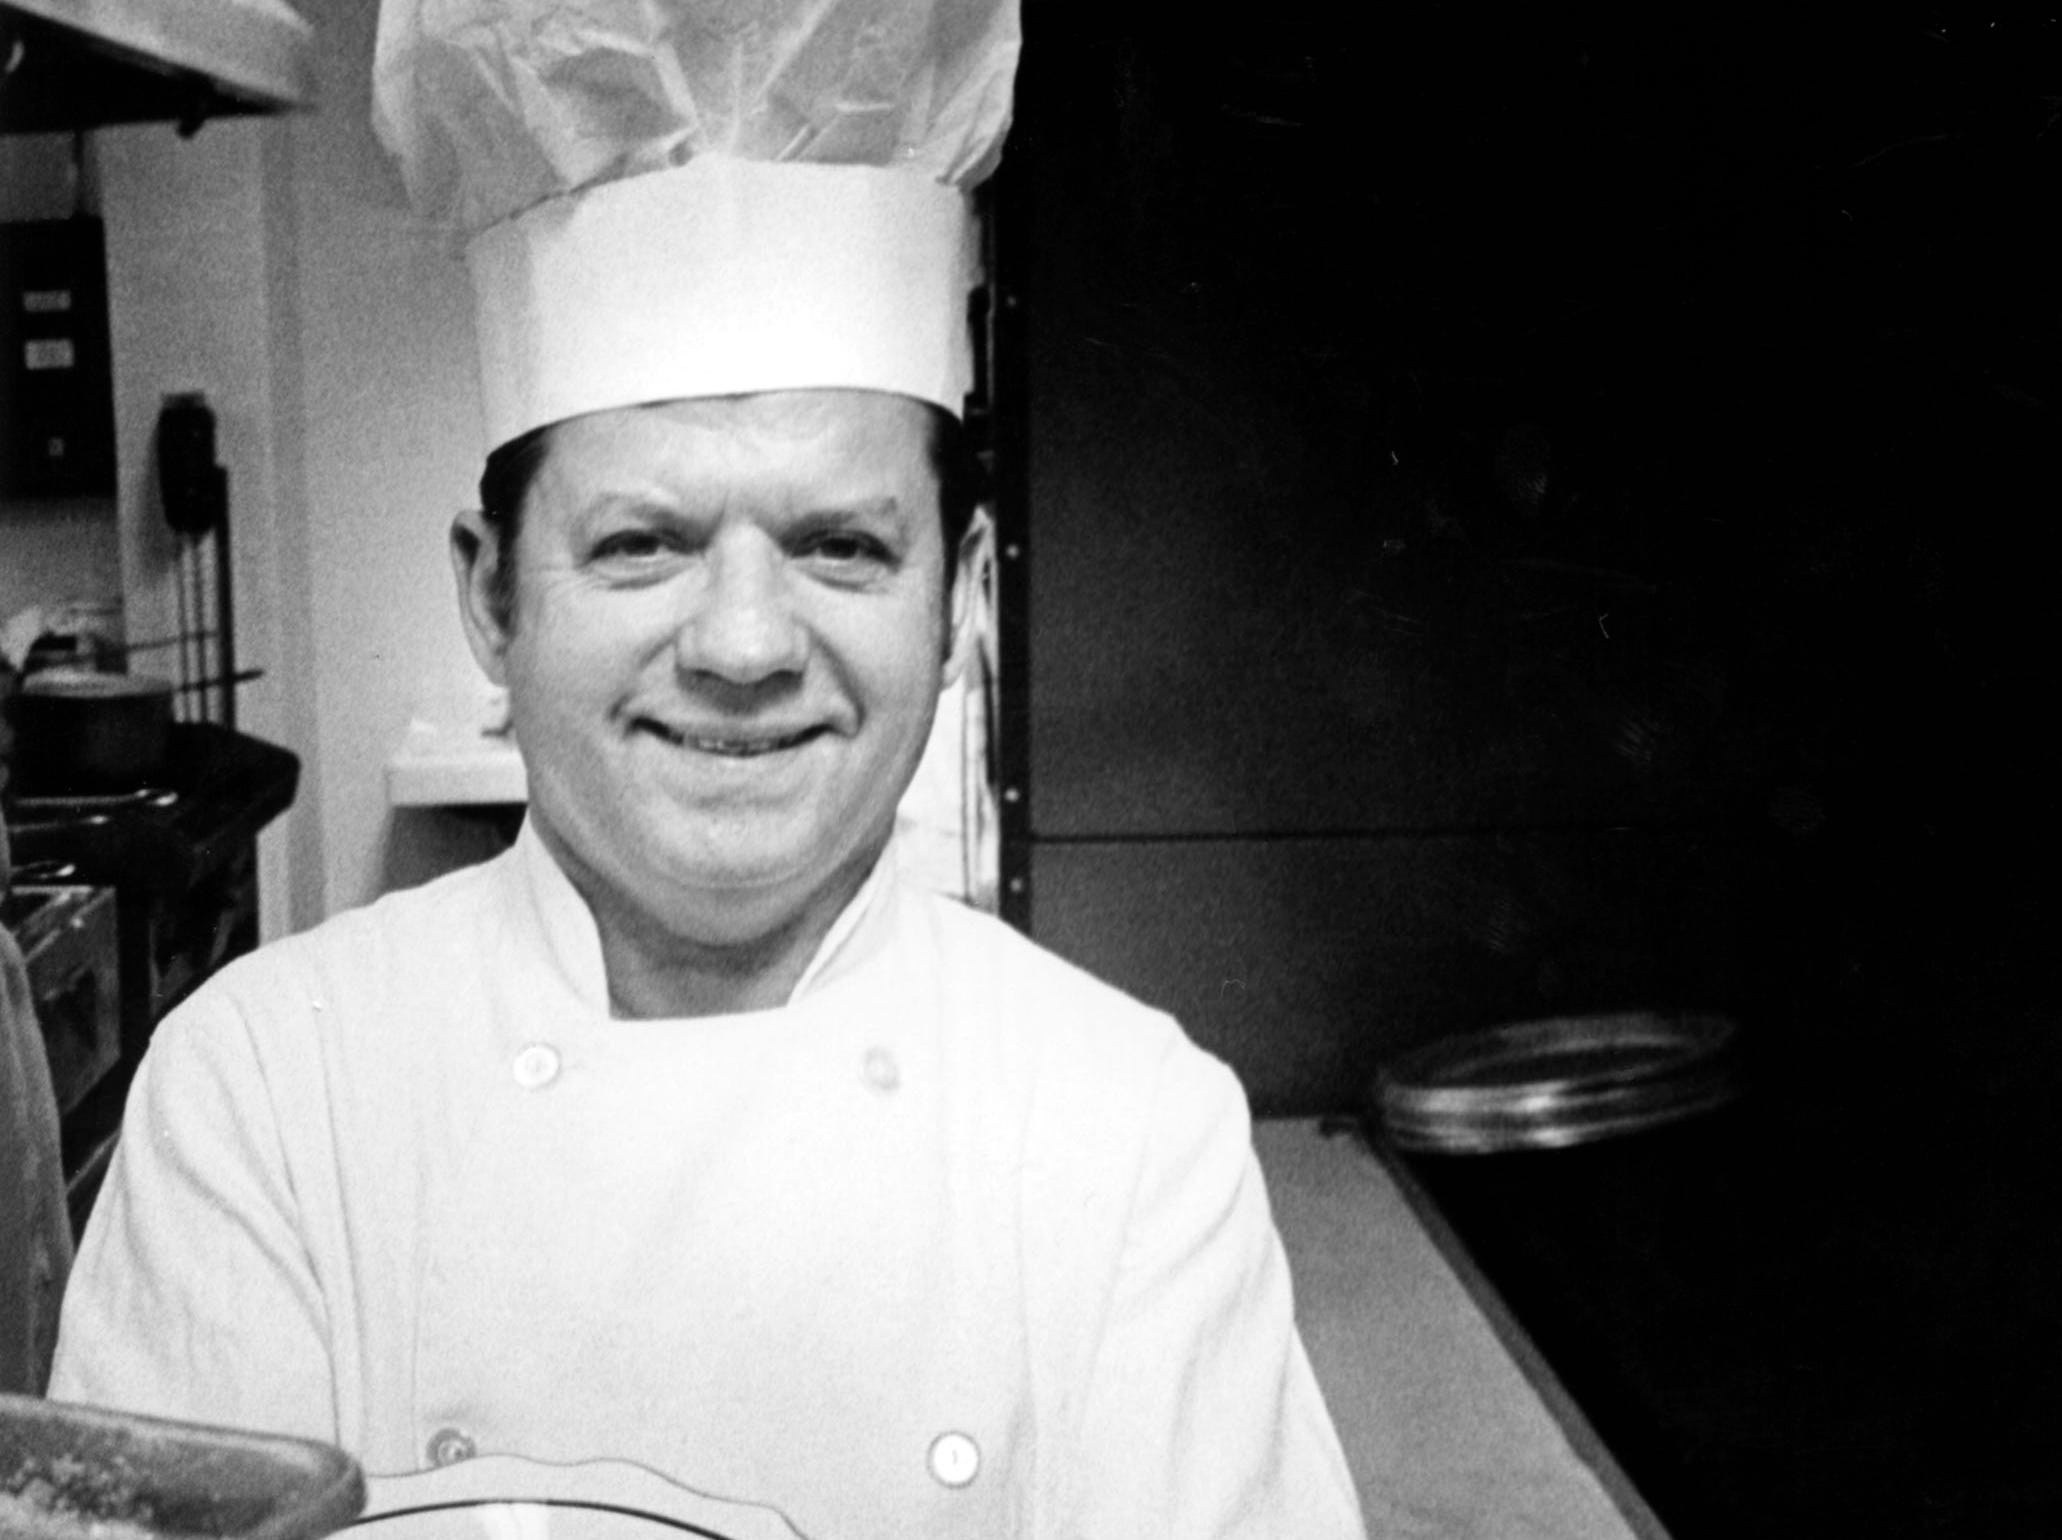 Arthur Peroulas of Arthur's Steak and Lobster in 1974. The restaurant was at 4661 Broadway.